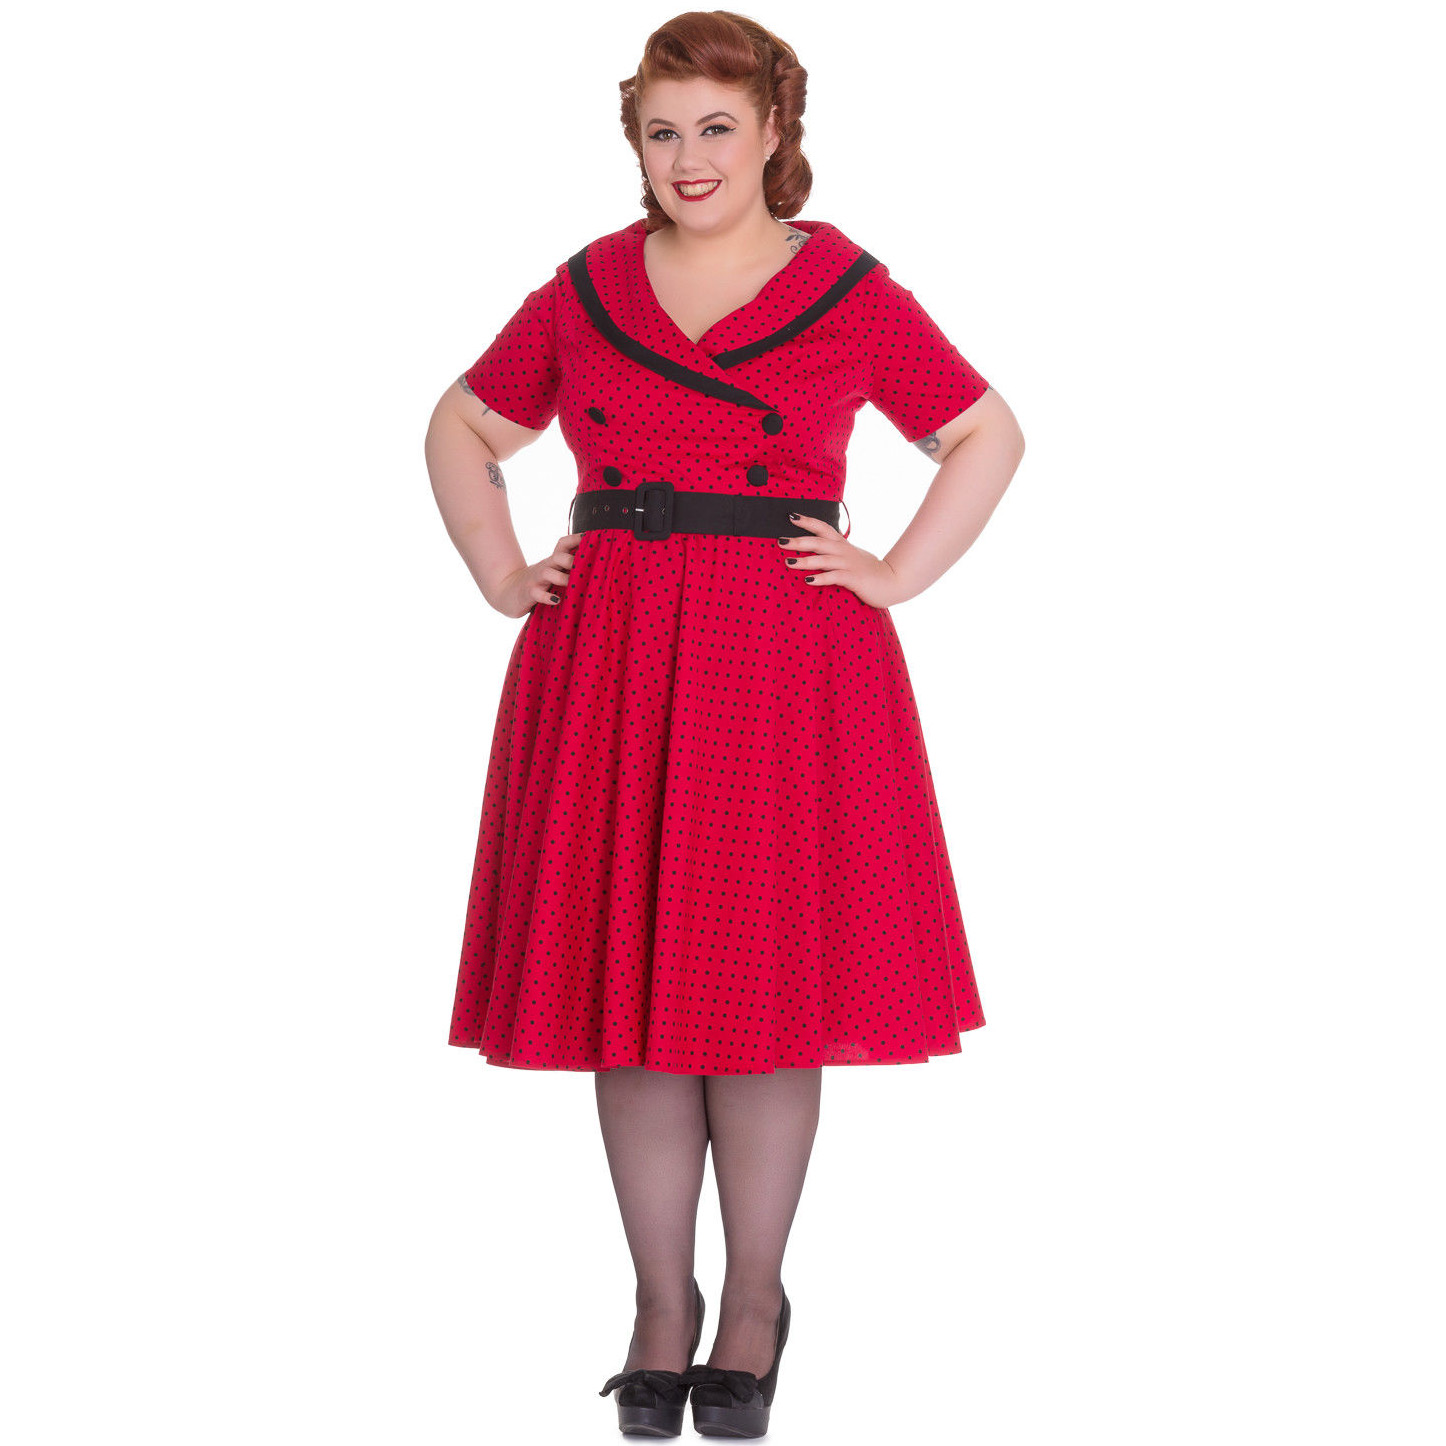 Hell-Bunny-40s-50s-Pin-Up-Swing-Dress-MIMI-Polka-Dot-Black-Red-All-Sizes thumbnail 7